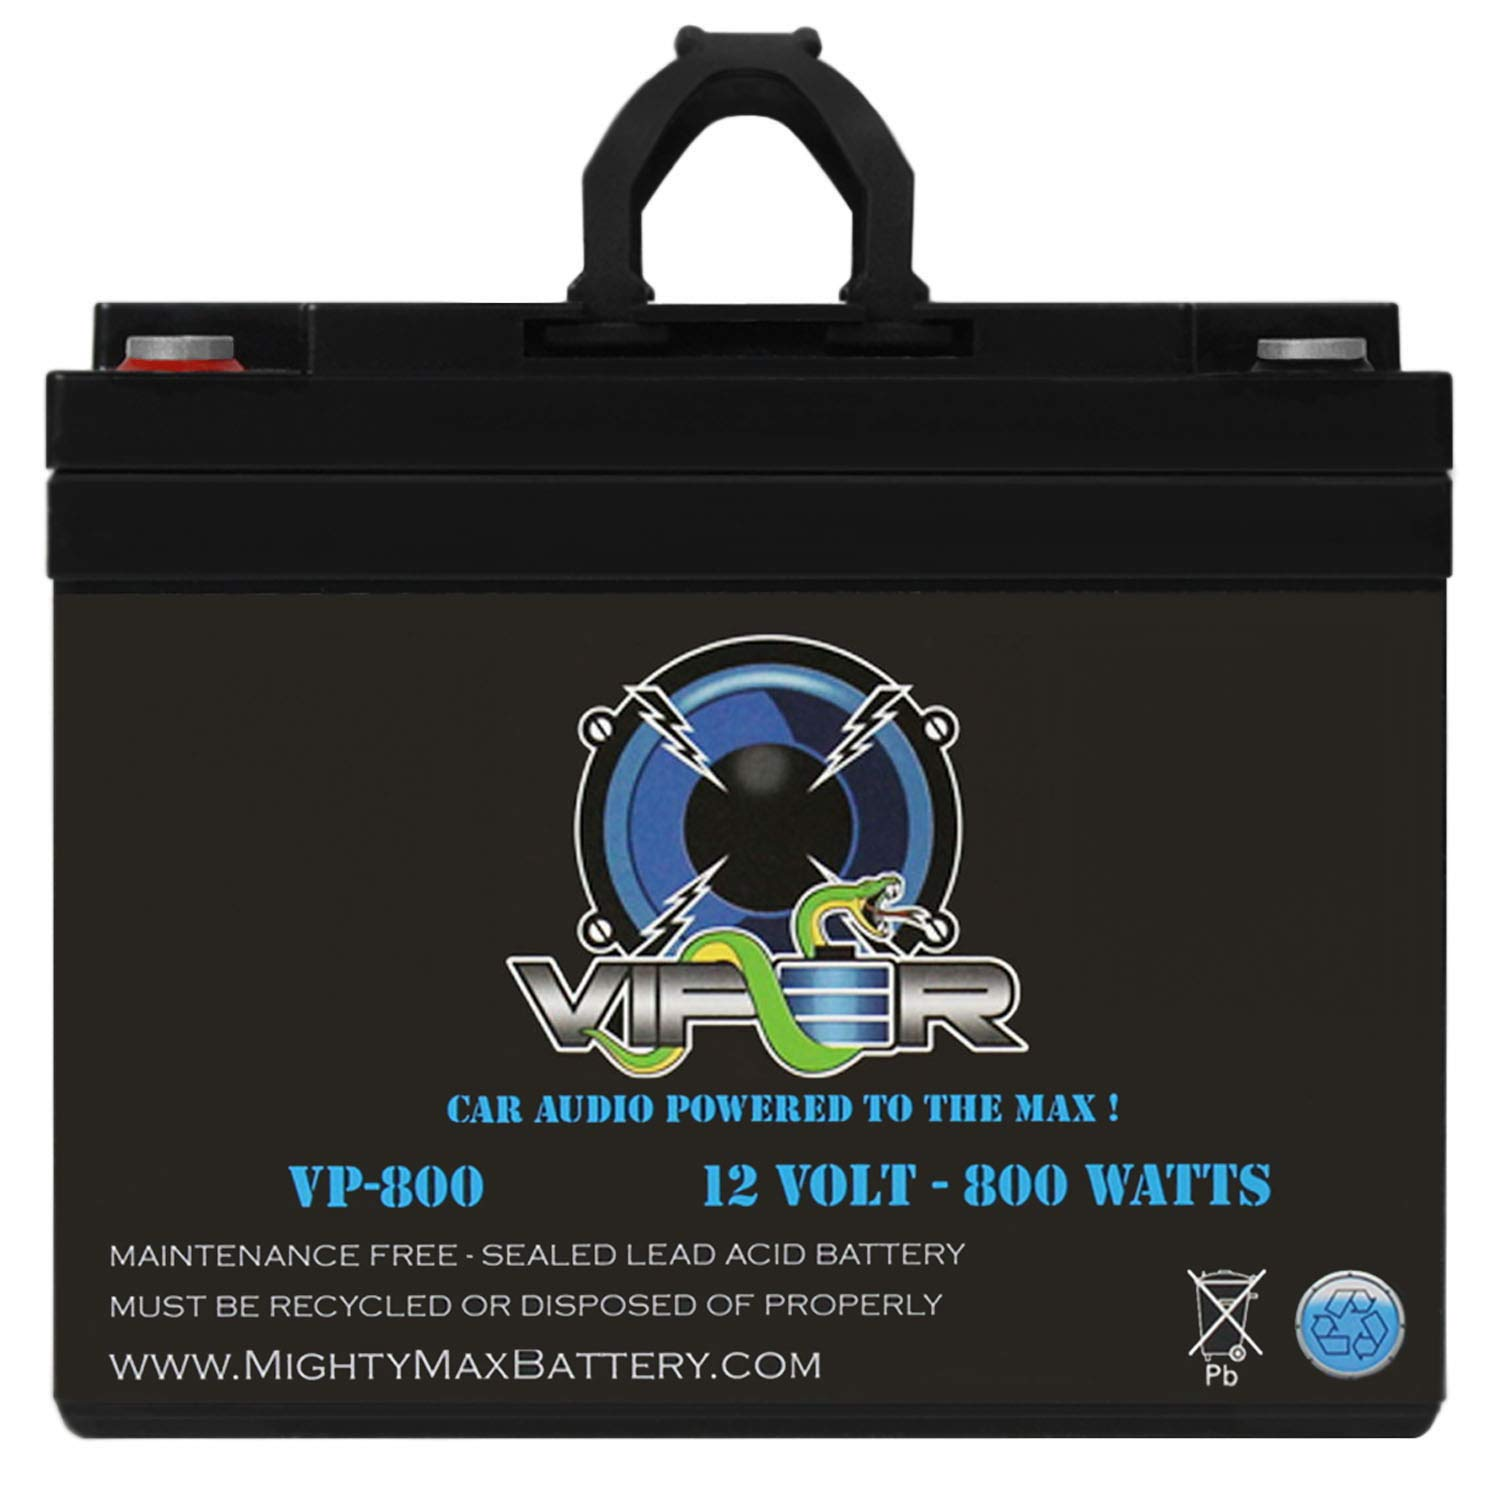 Mighty Max Battery Viper VP-800 800 Watt Car Audio Battery/Power Cell System AGM Brand Product